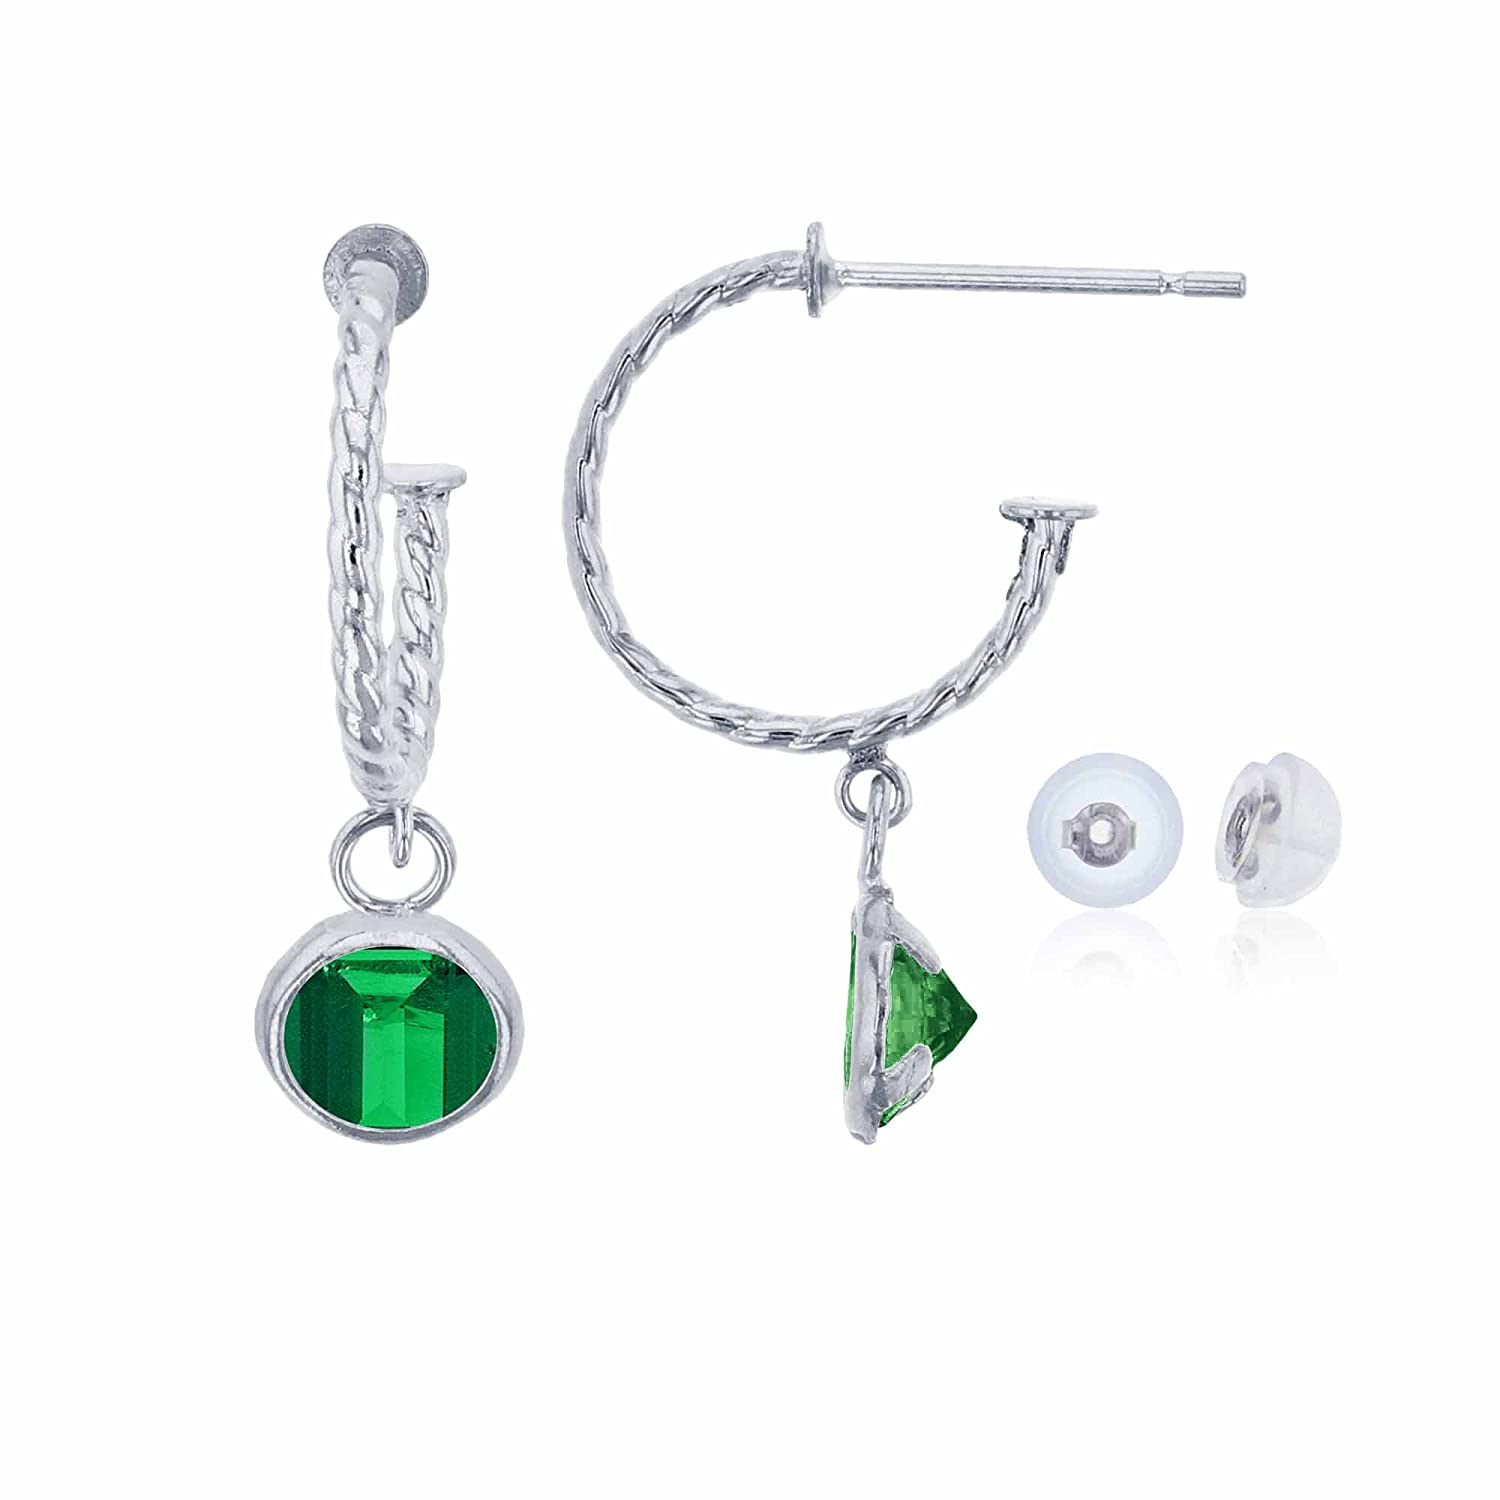 10K White Gold 12mm Rope Half-Hoop with 4mm Round Created Emerald Bezel Drop Earring with Silicone Back